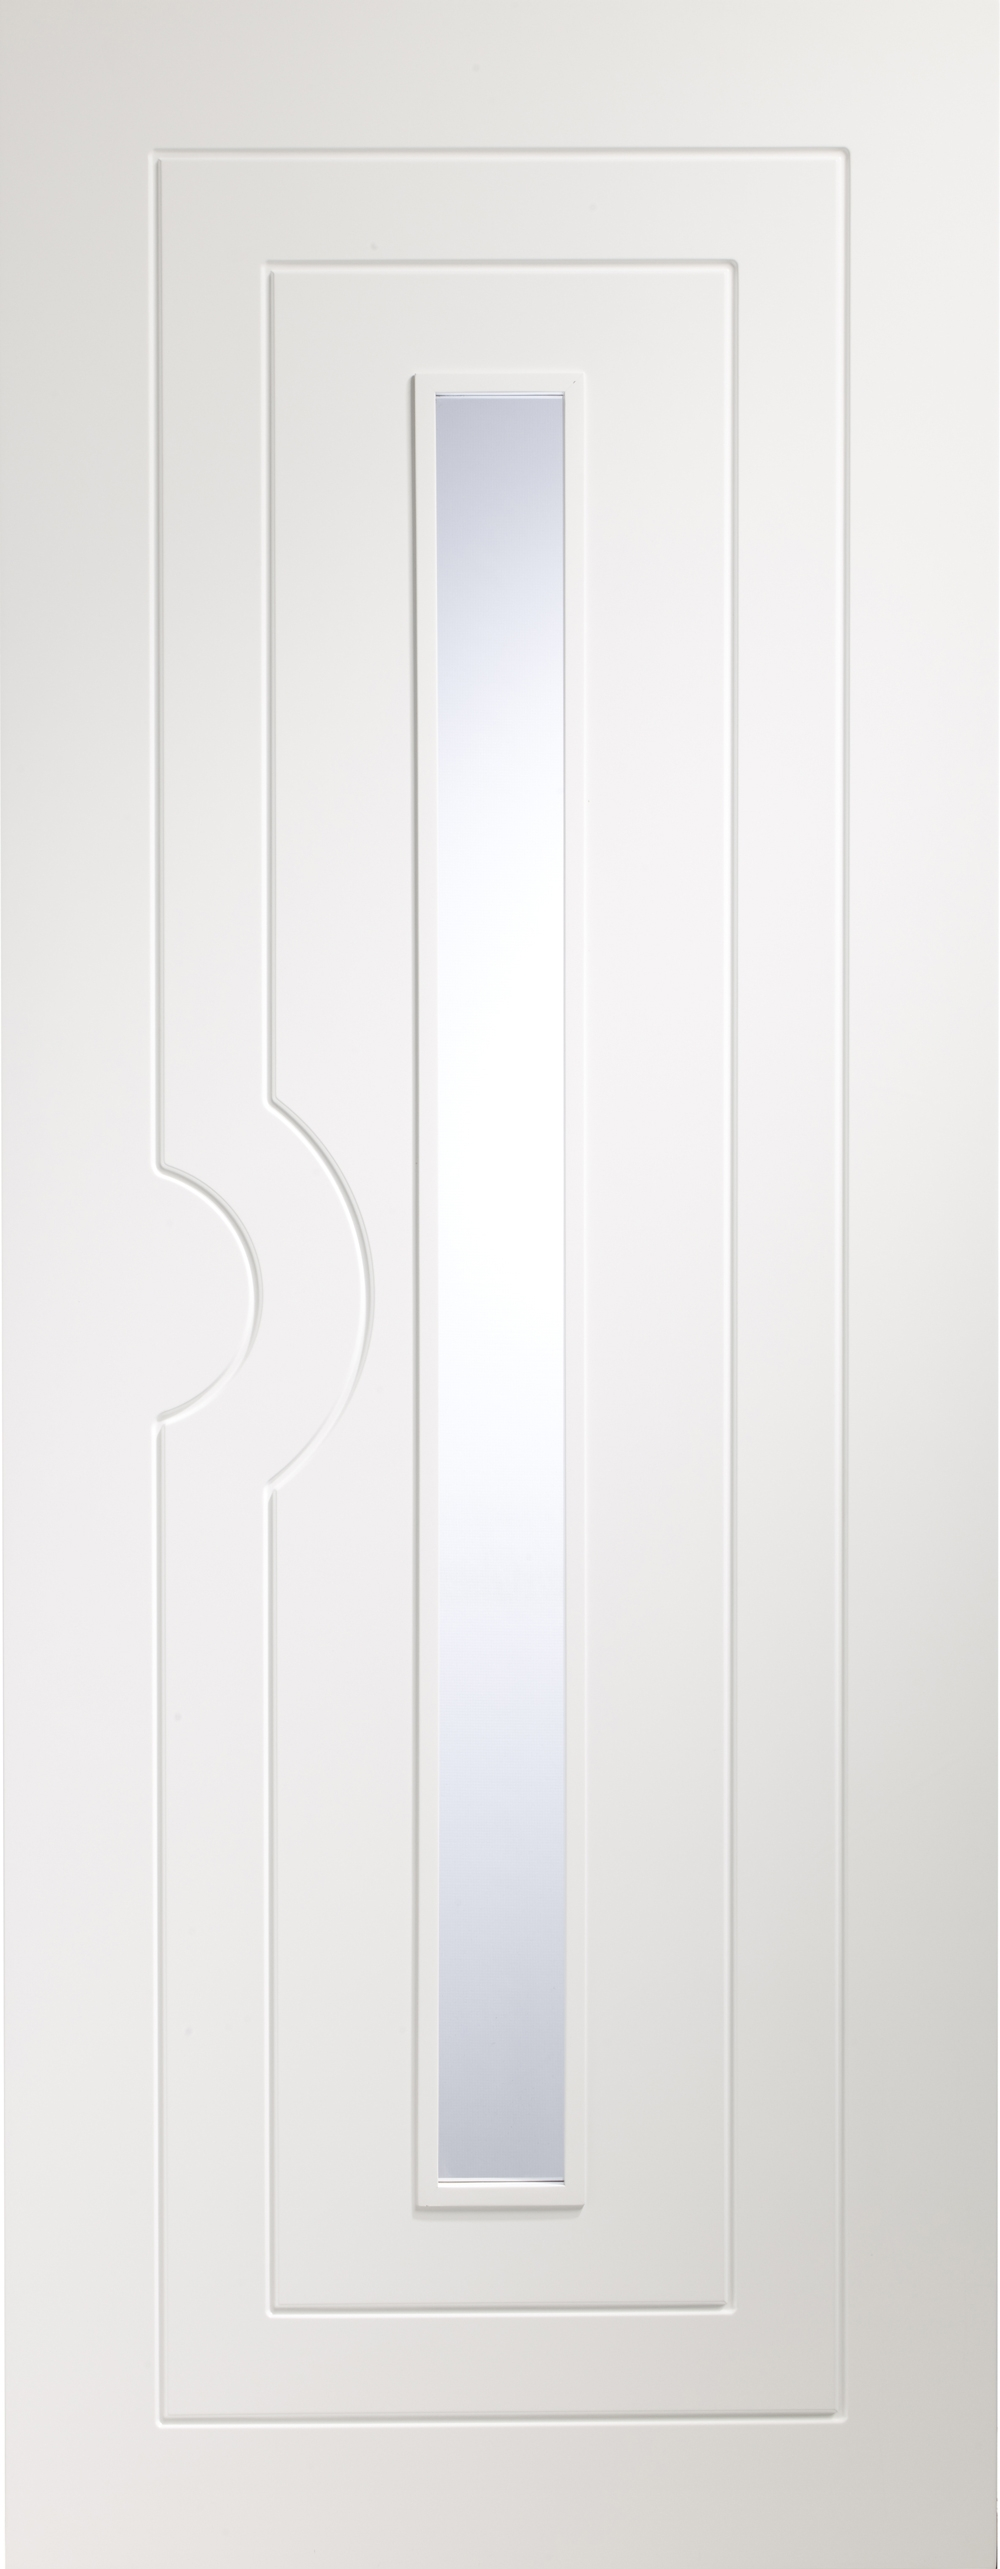 Potenza White Glazed Door - PREFINISHED